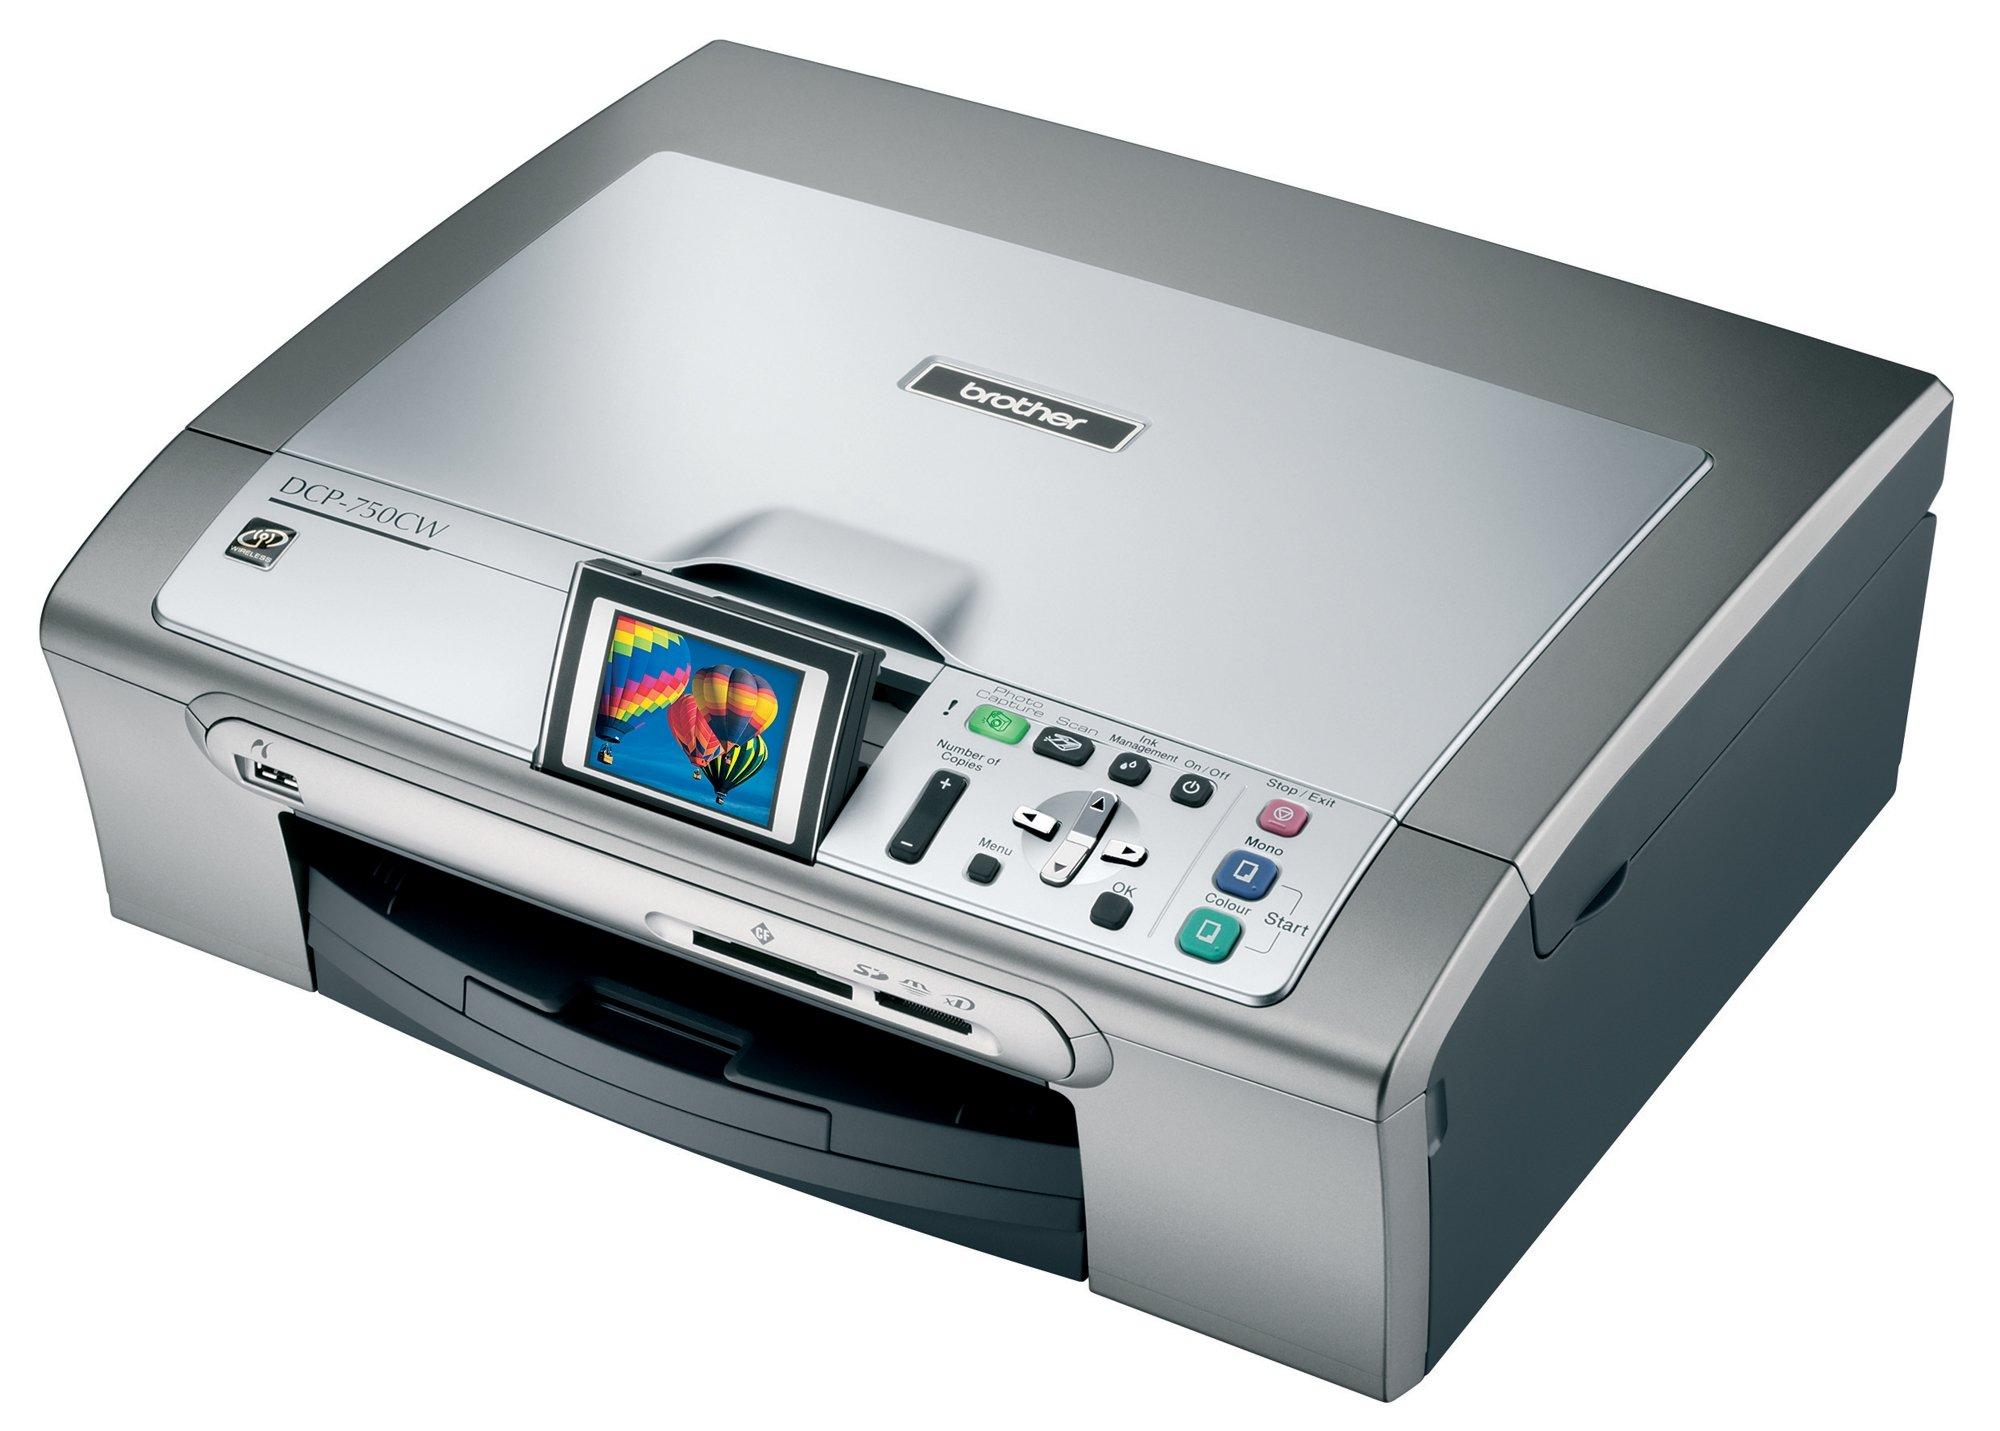 Brother DCP-750 (DCP-serie)